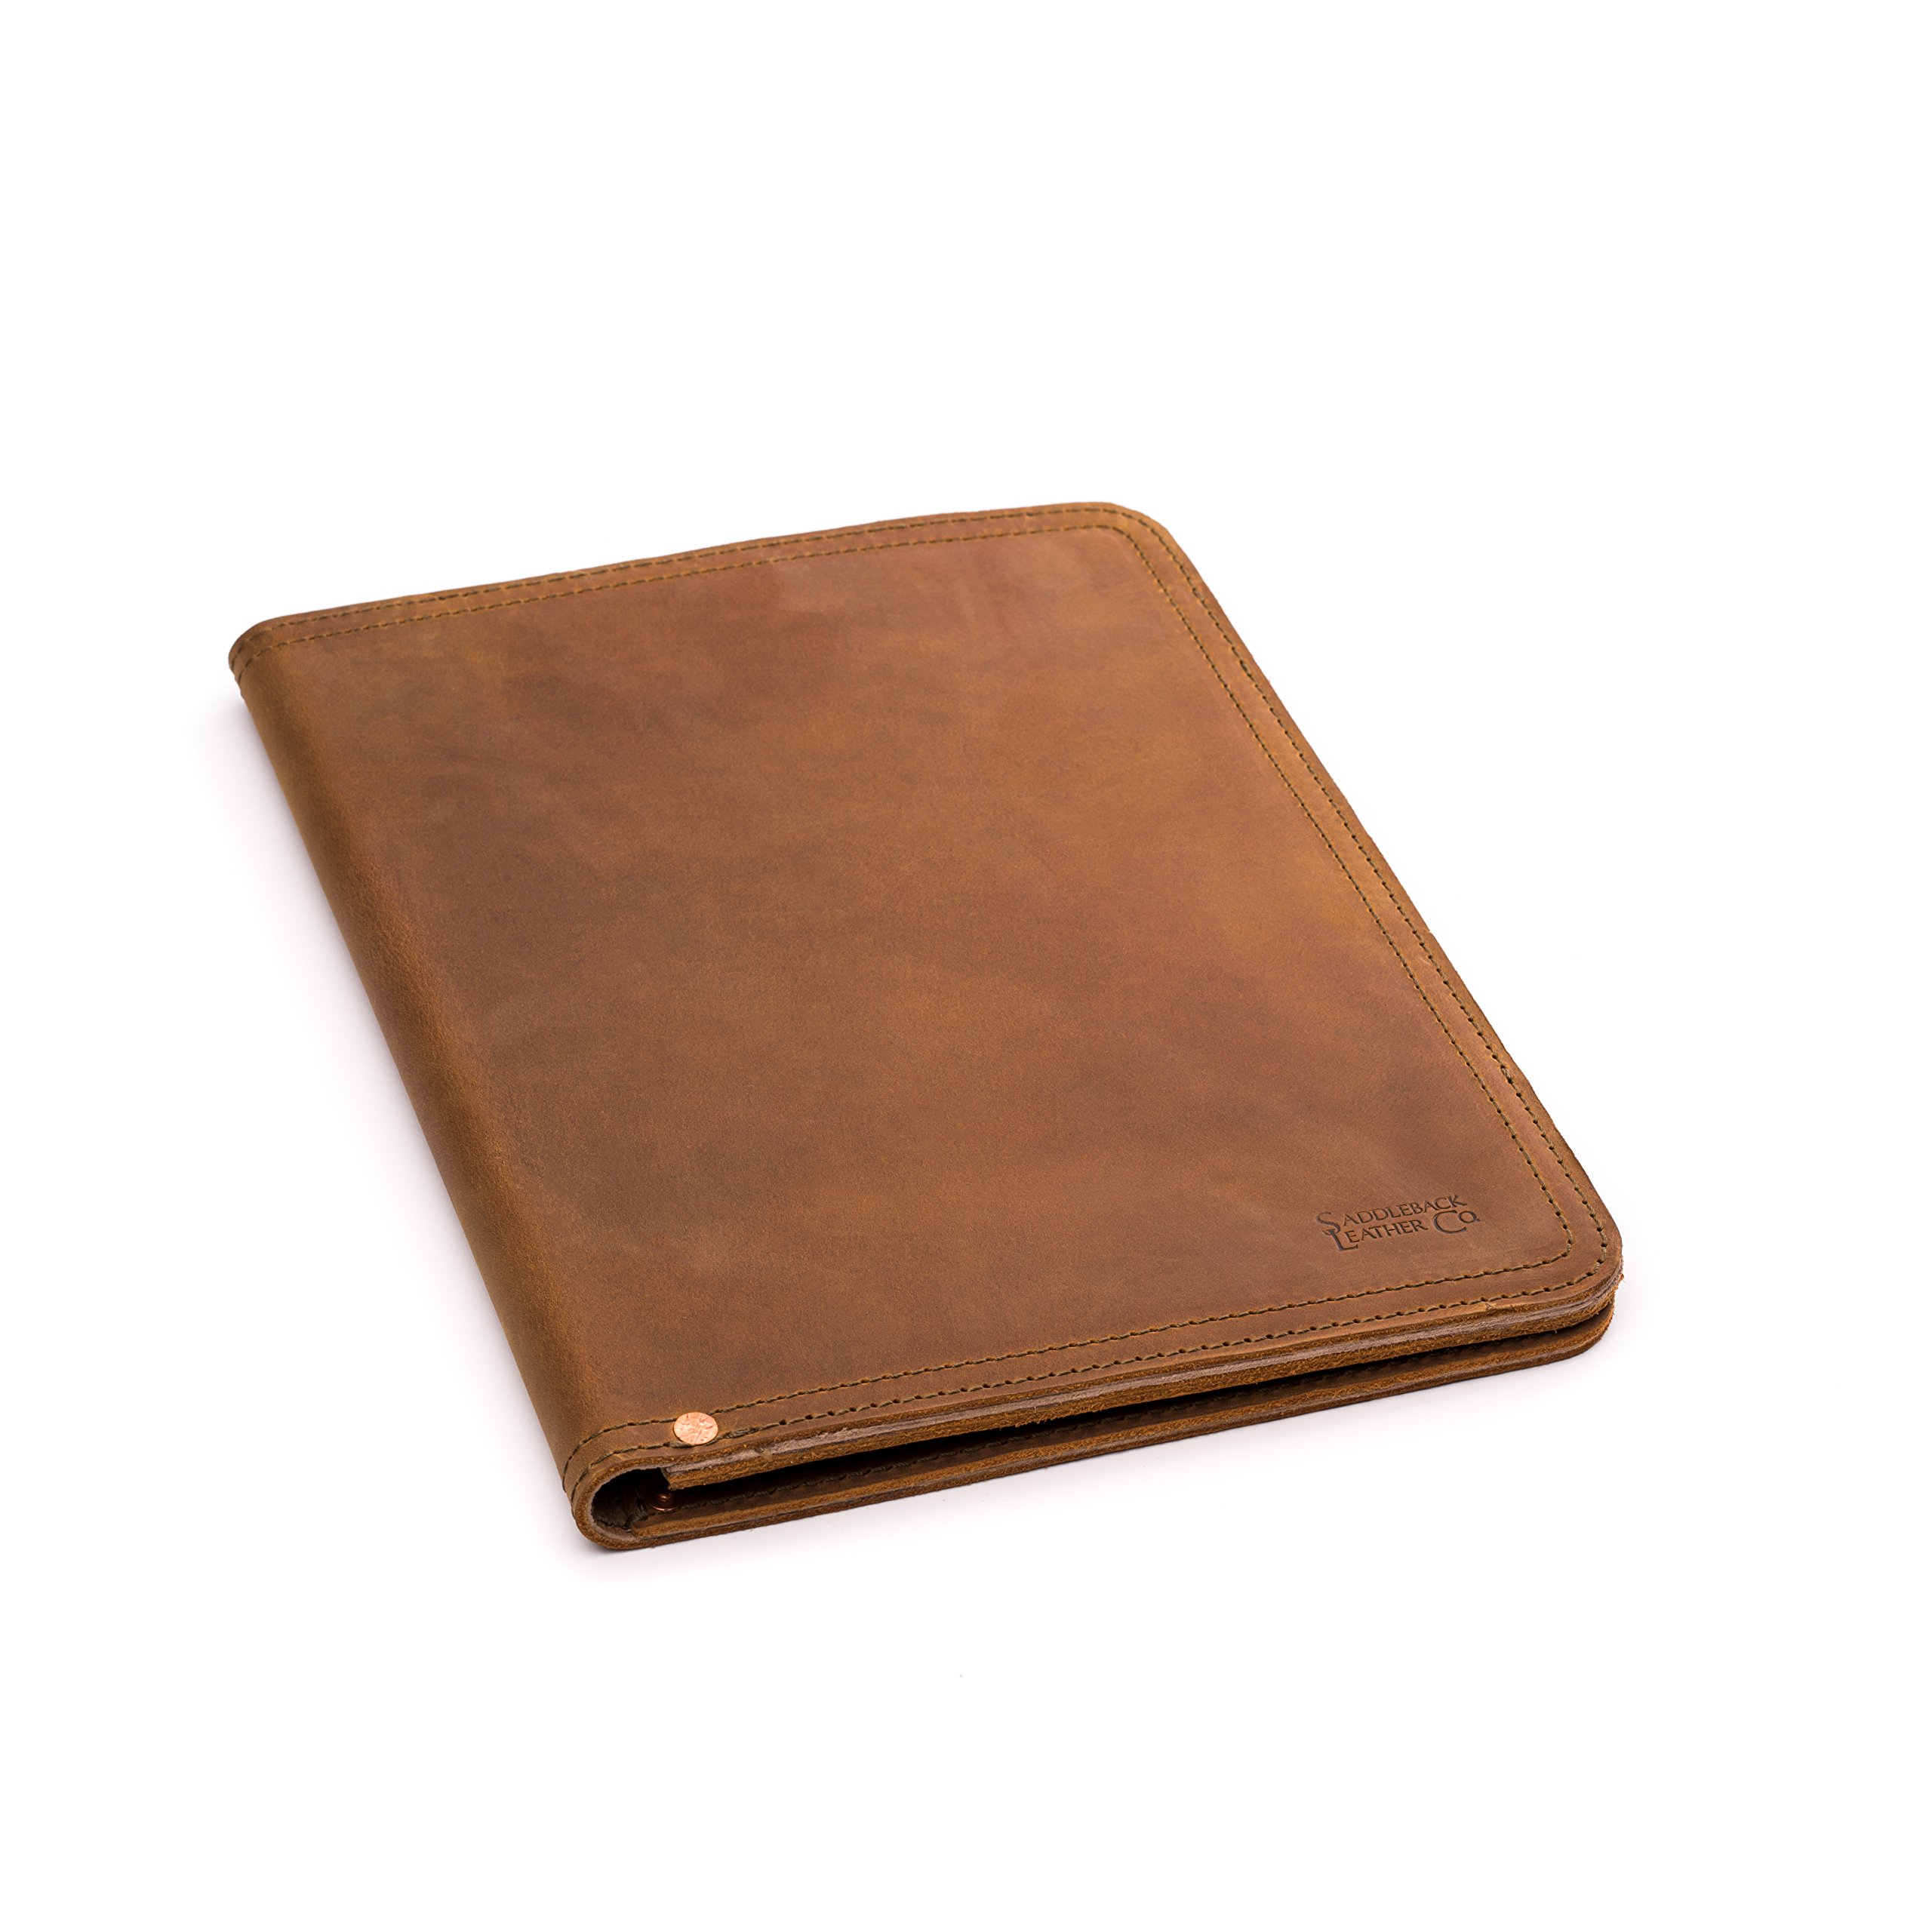 Saddleback Leather Medium Notepad Holder - The Best Leather Padfolio for Legal Pads, Tablets and Business Cards - 100 Year Warranty